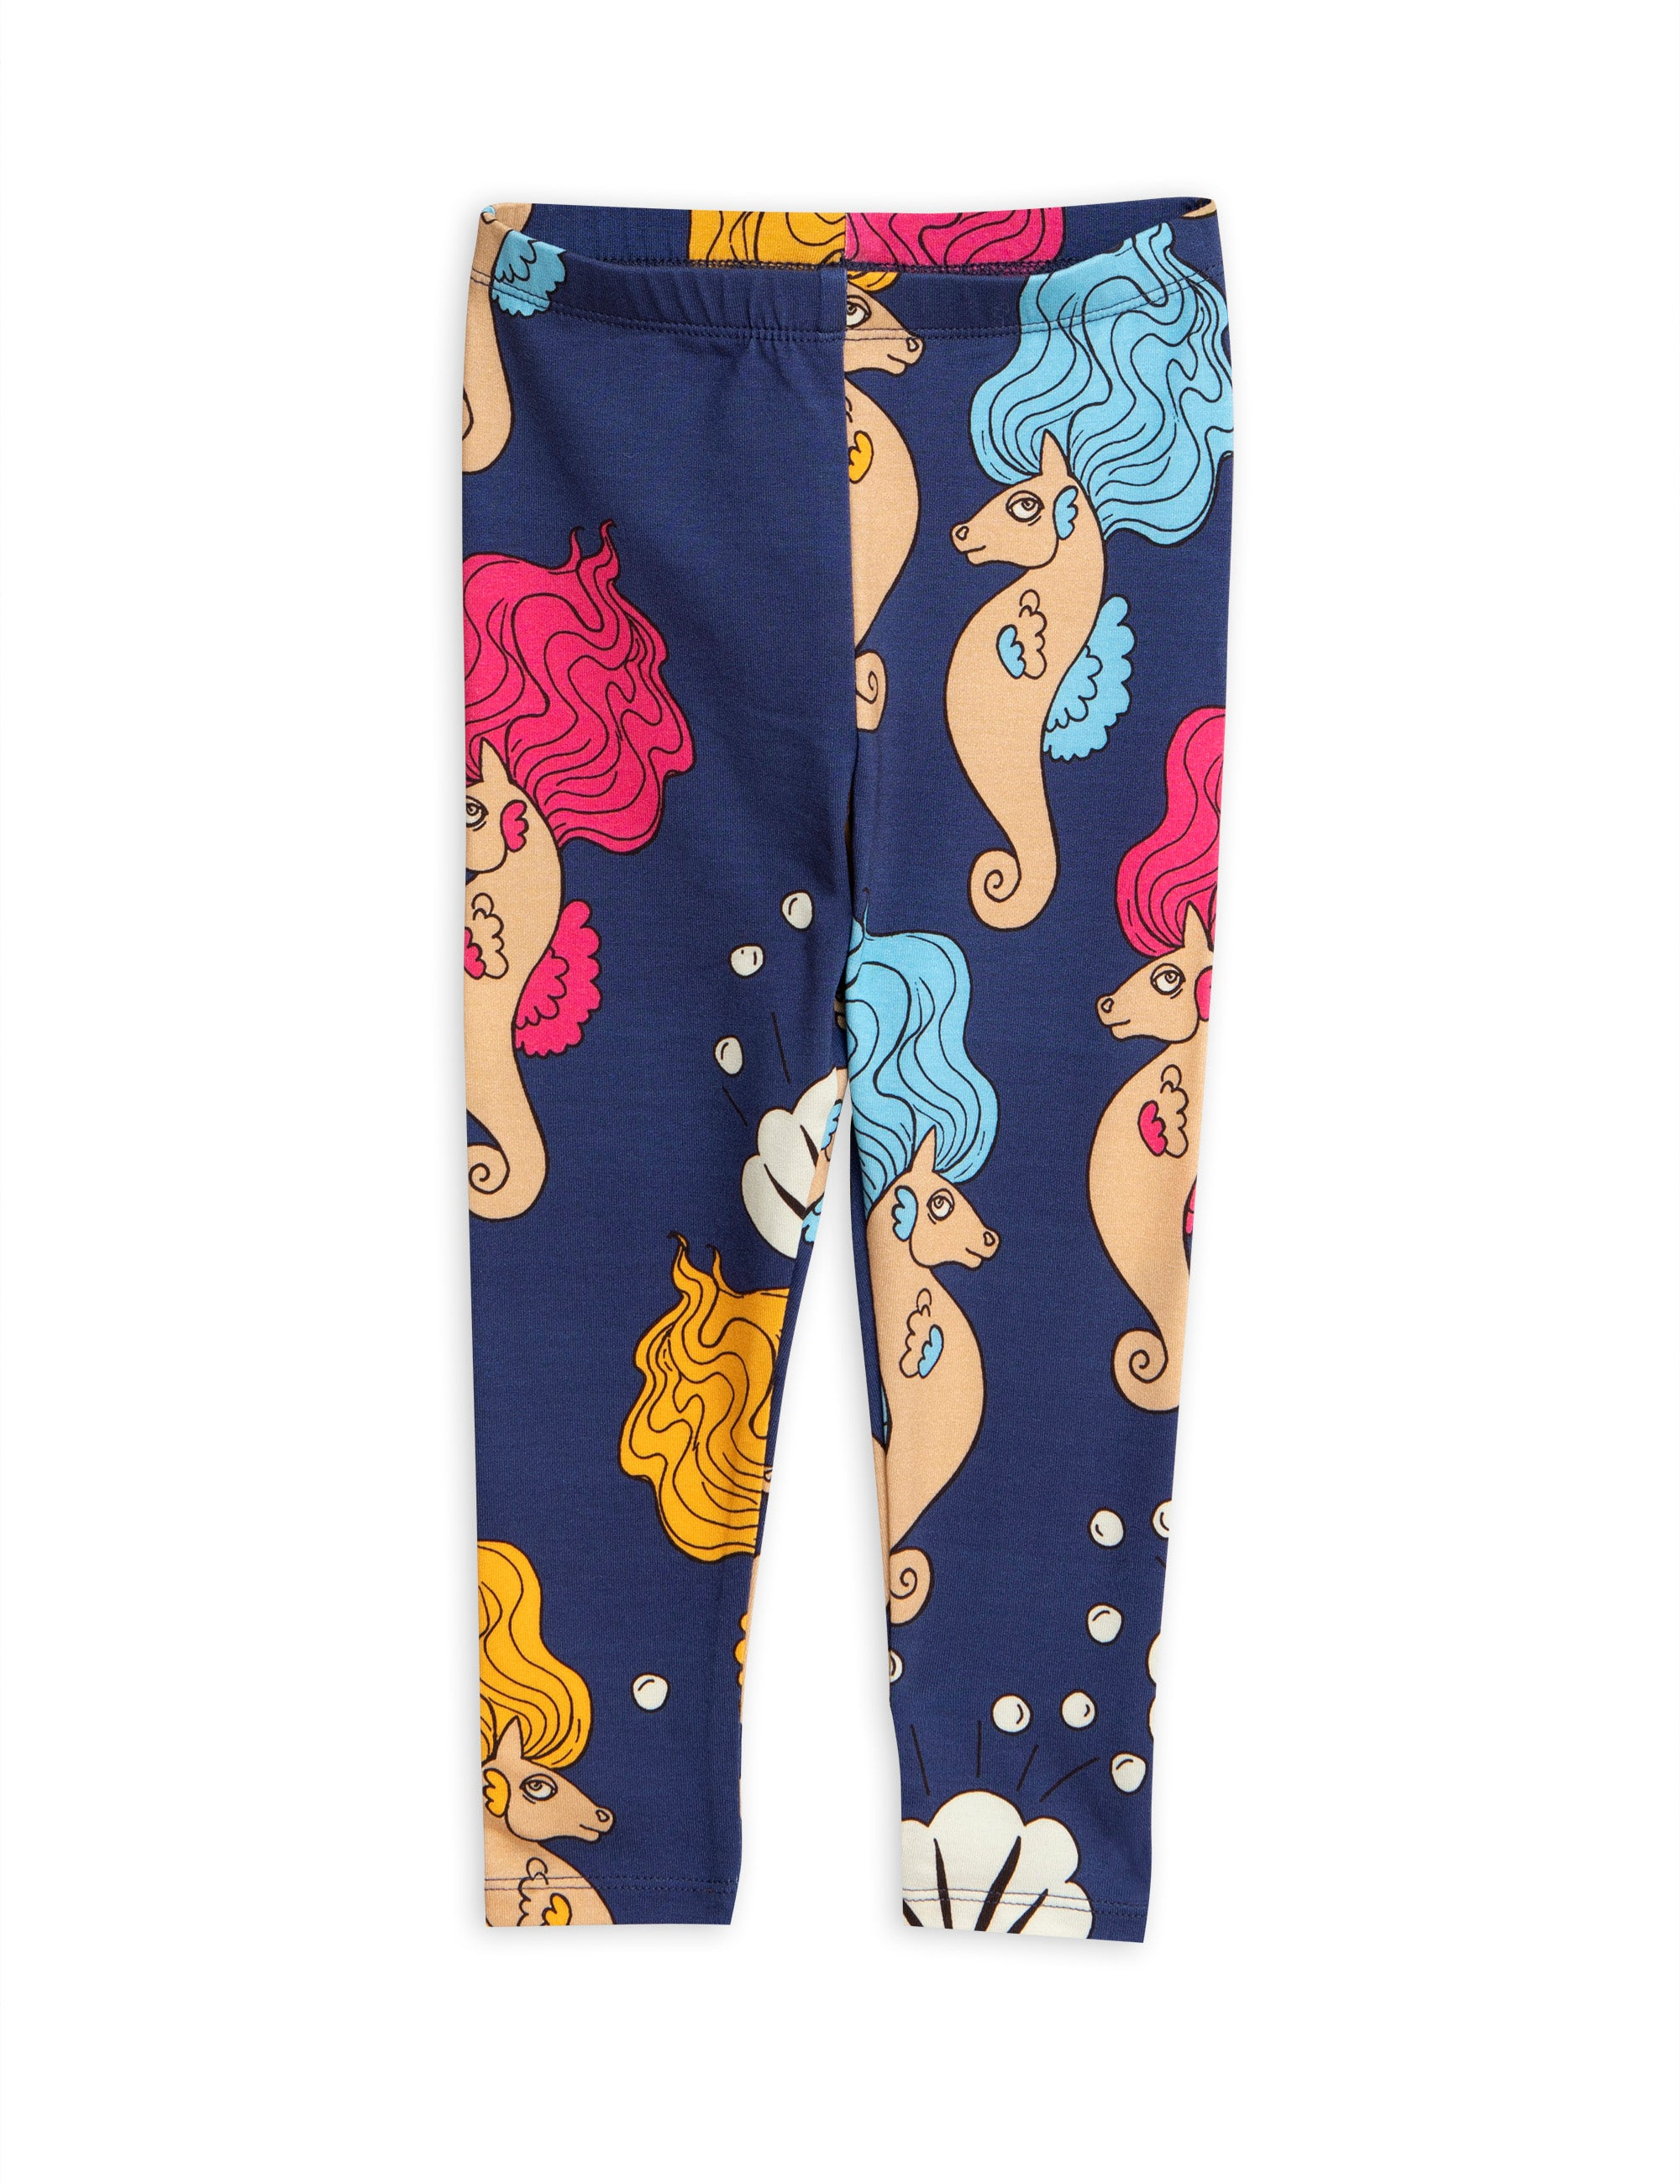 Designer Kids Fashion at Bloom Moda Online Children's Boutique - Mini Rodini Printed Seahorse Leggings,  Pants